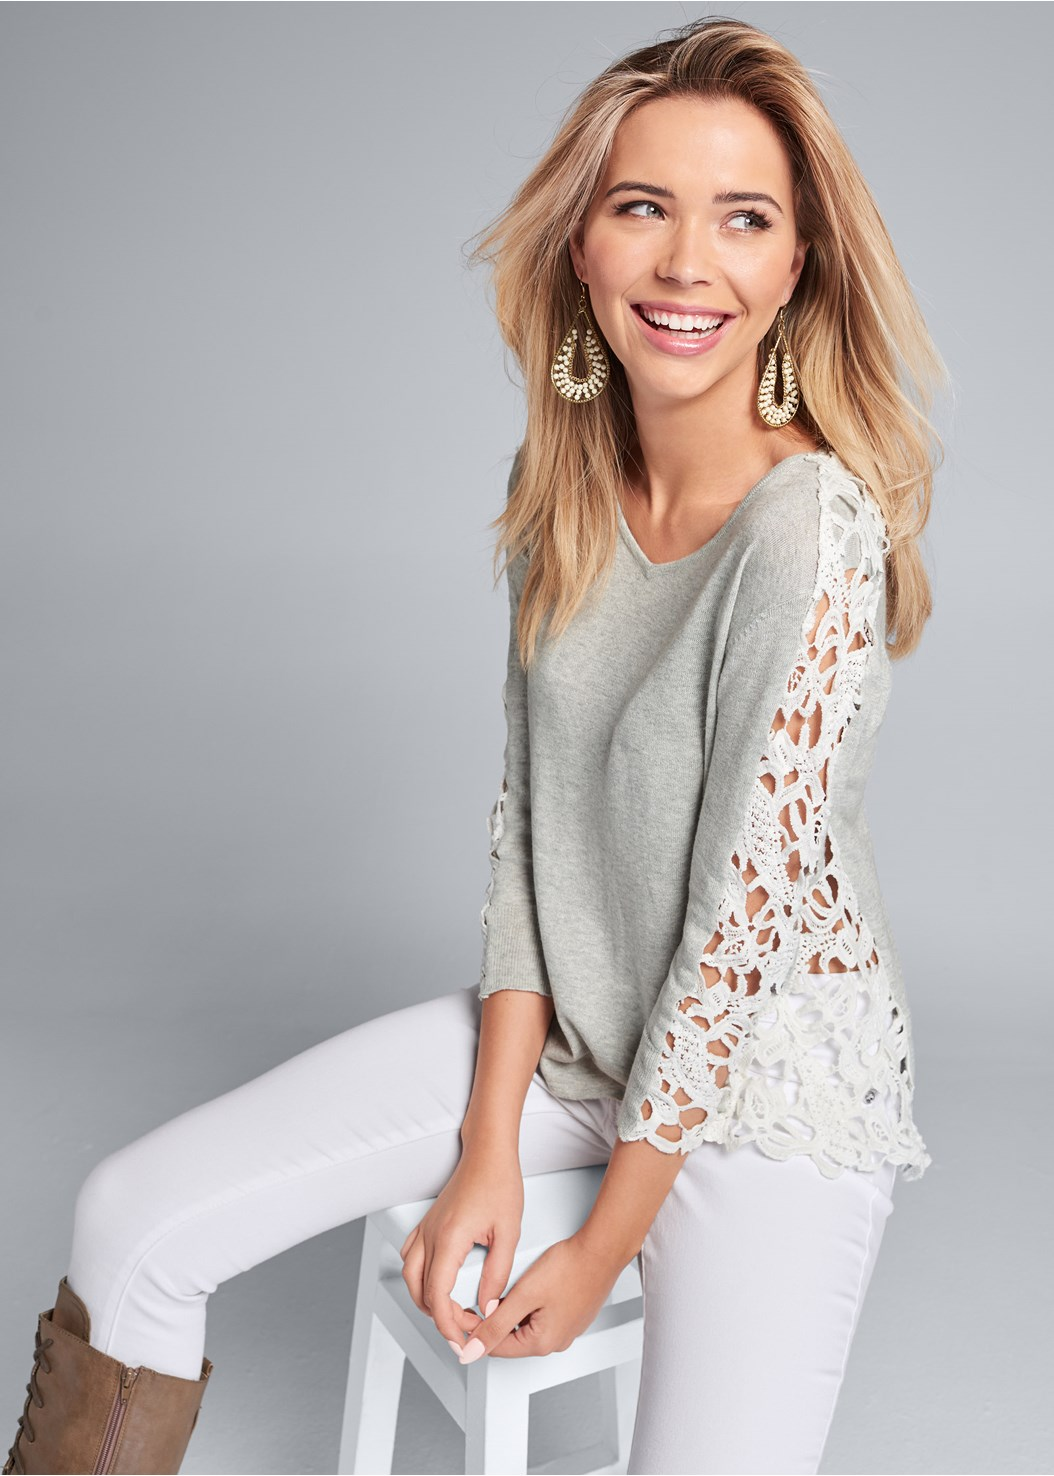 Lace Sleeve Top,Mid Rise Color Skinny Jeans,Lace Up Tall Boots,Beaded Drop Earrings